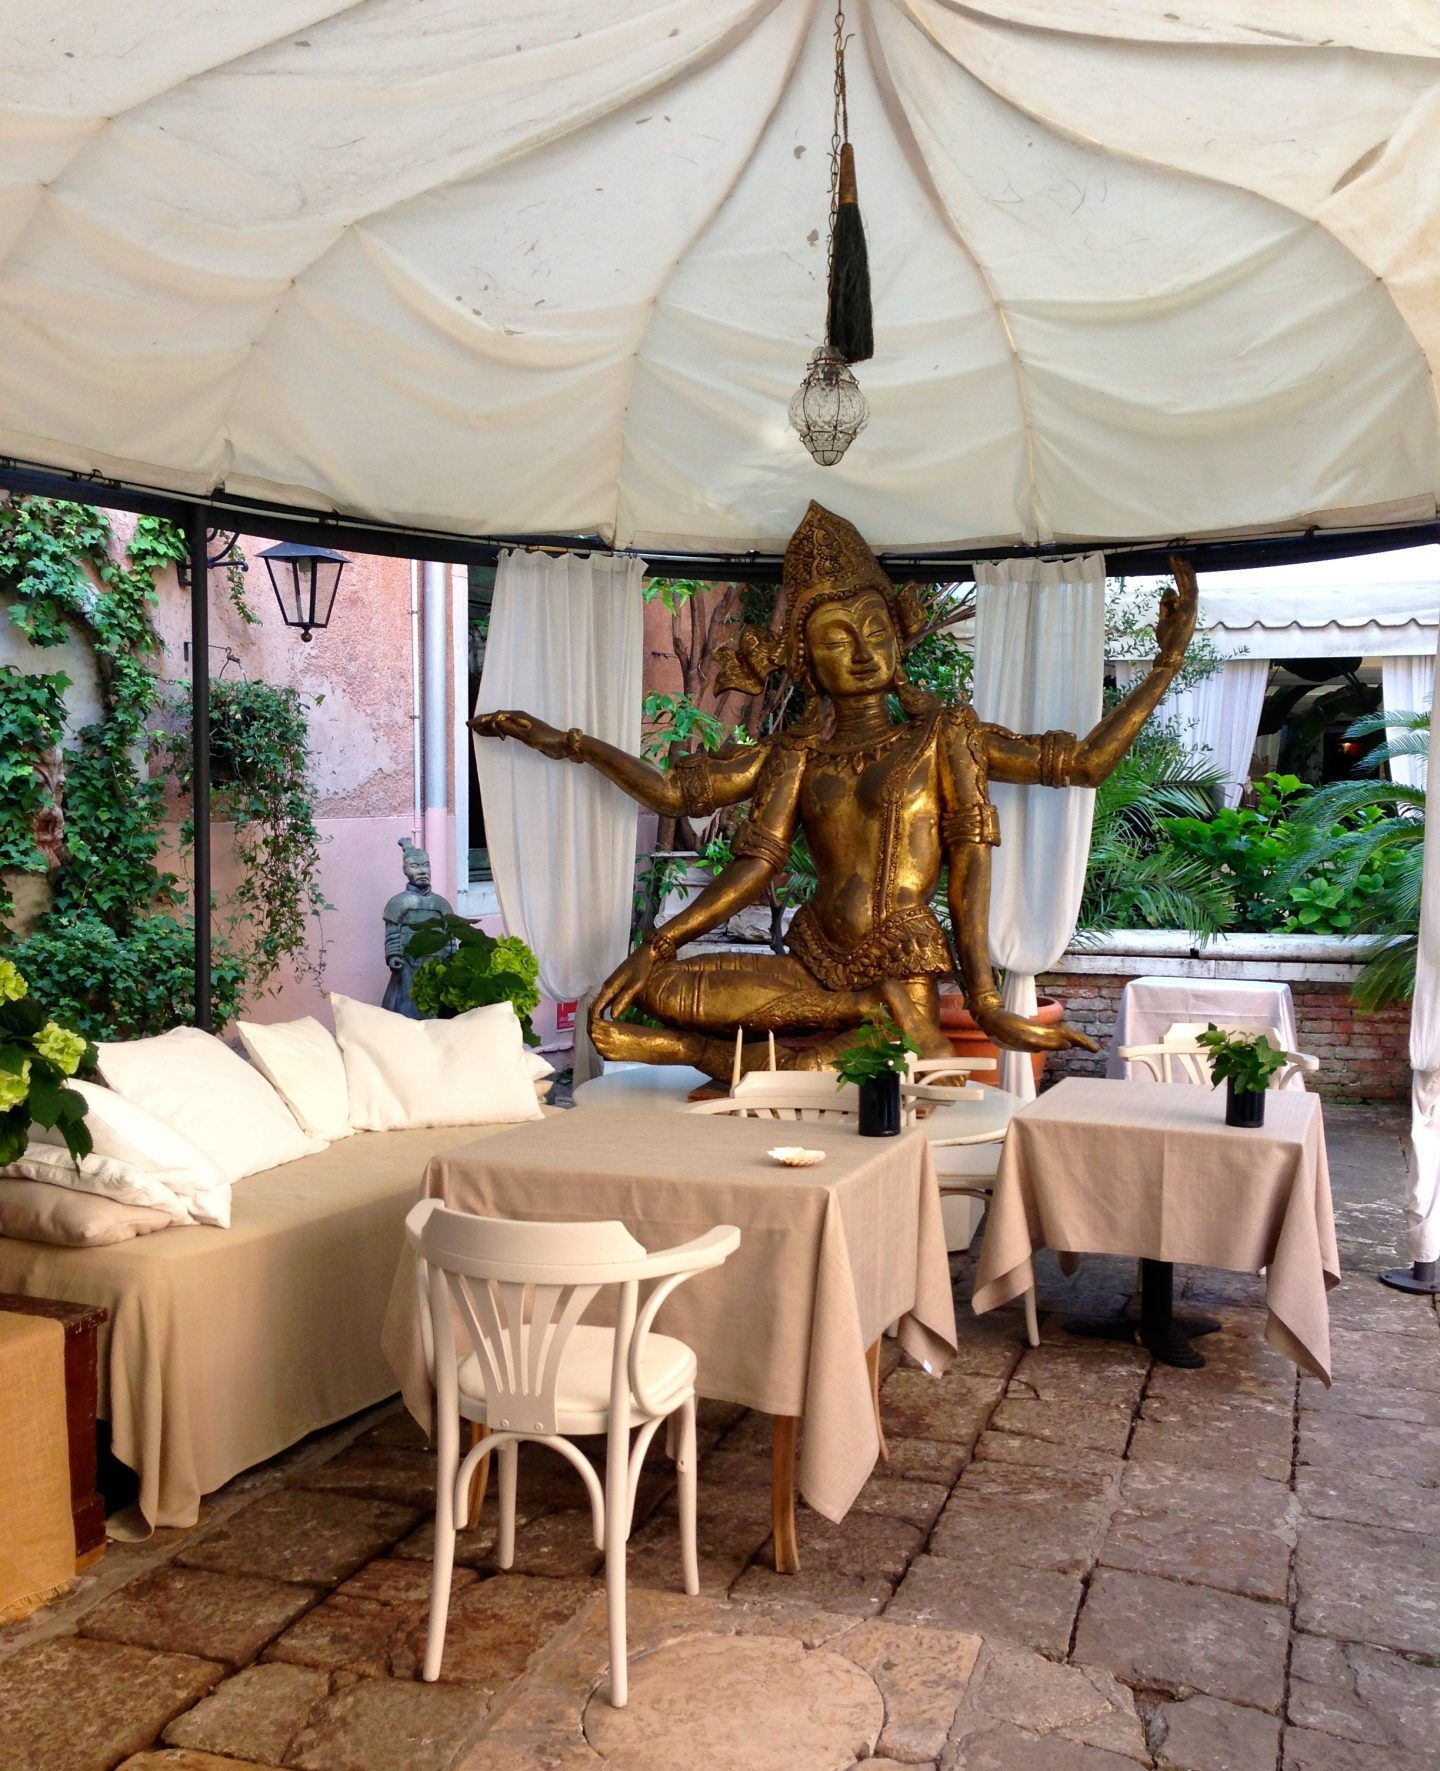 Eating breakfast in the courtyard of Hotel Metropole in Venice.